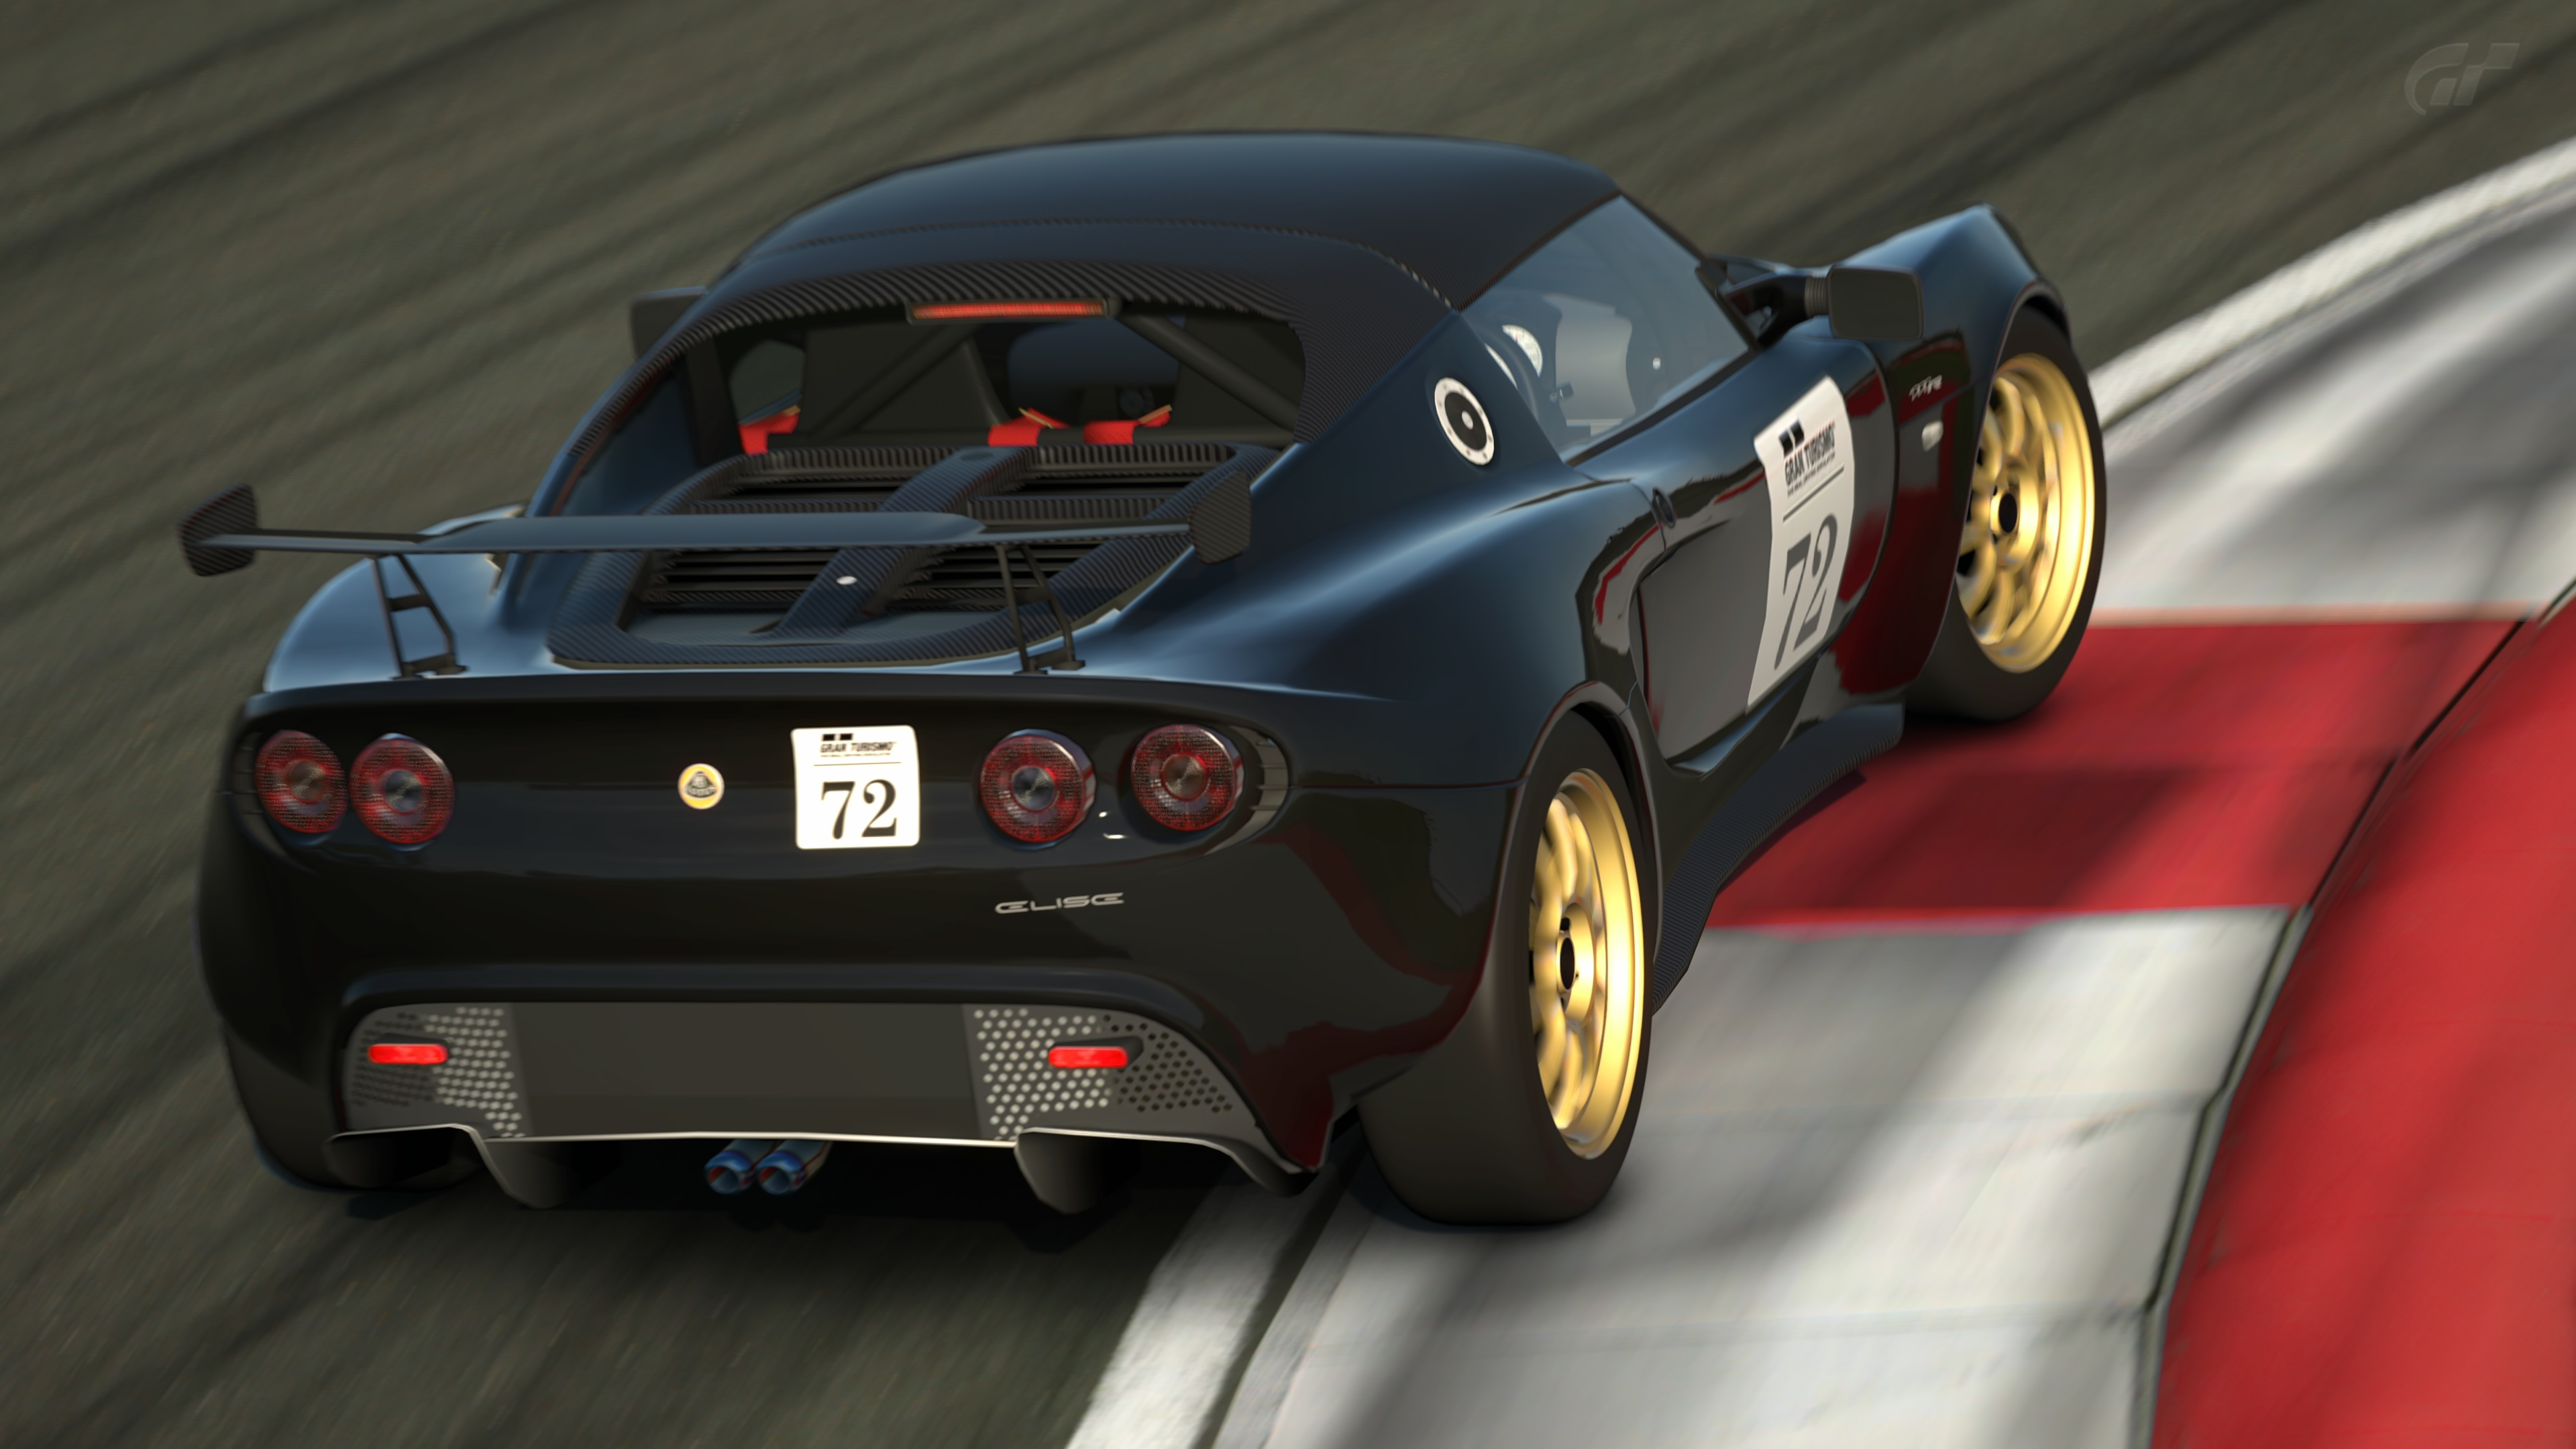 lotus elise 111r race car gran turismo 6 by vertualissimo on deviantart. Black Bedroom Furniture Sets. Home Design Ideas